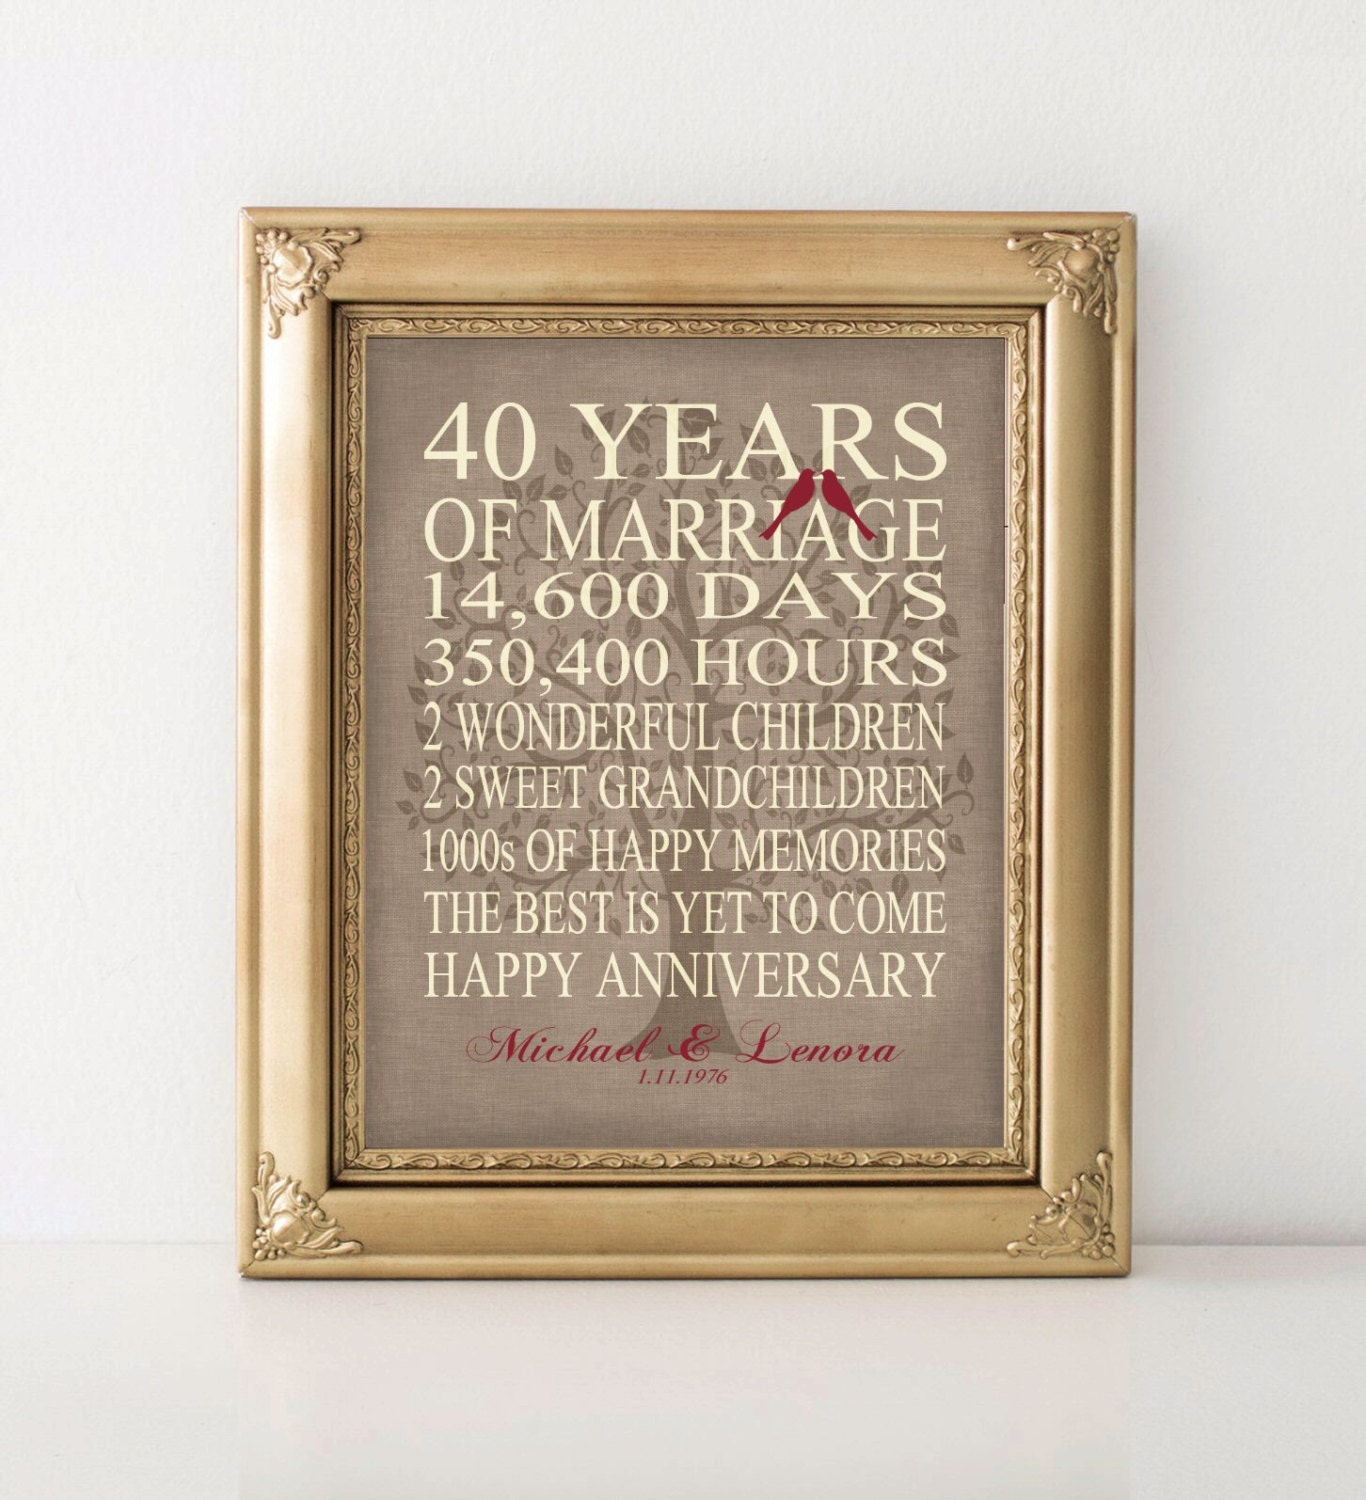 40th Wedding Anniversary Gifts For Parents Ideas: Wedding Anniversary Gift 40th Anniversary Gift Personalized